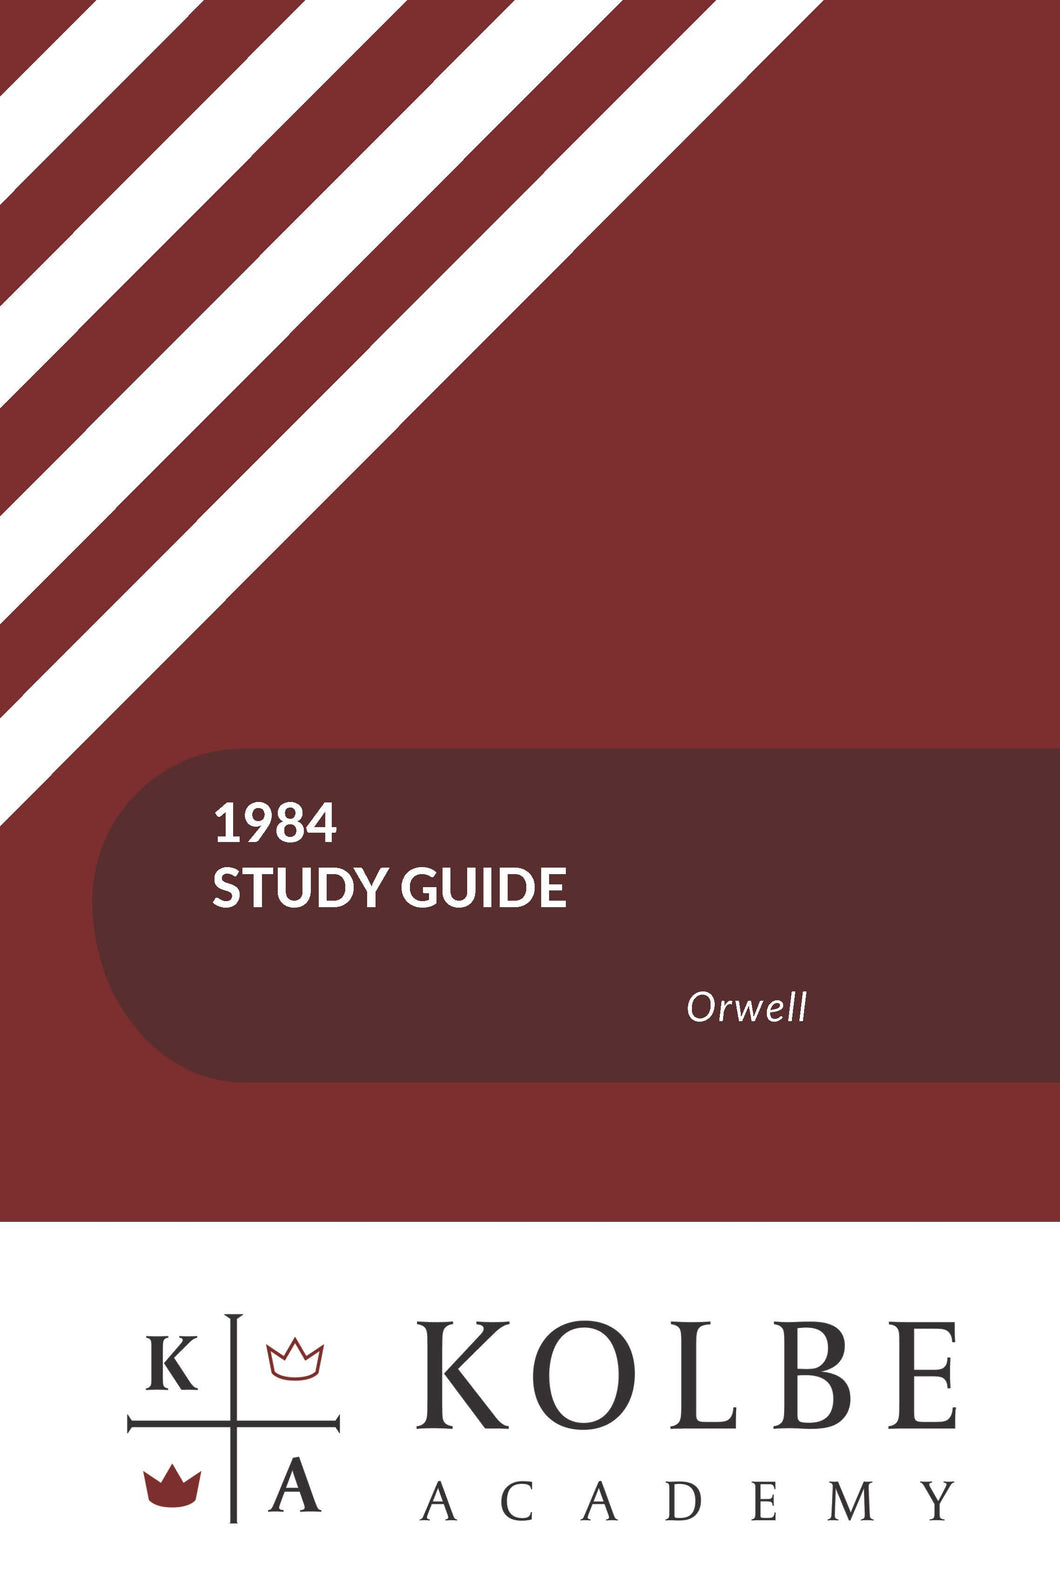 1984 Study Guides